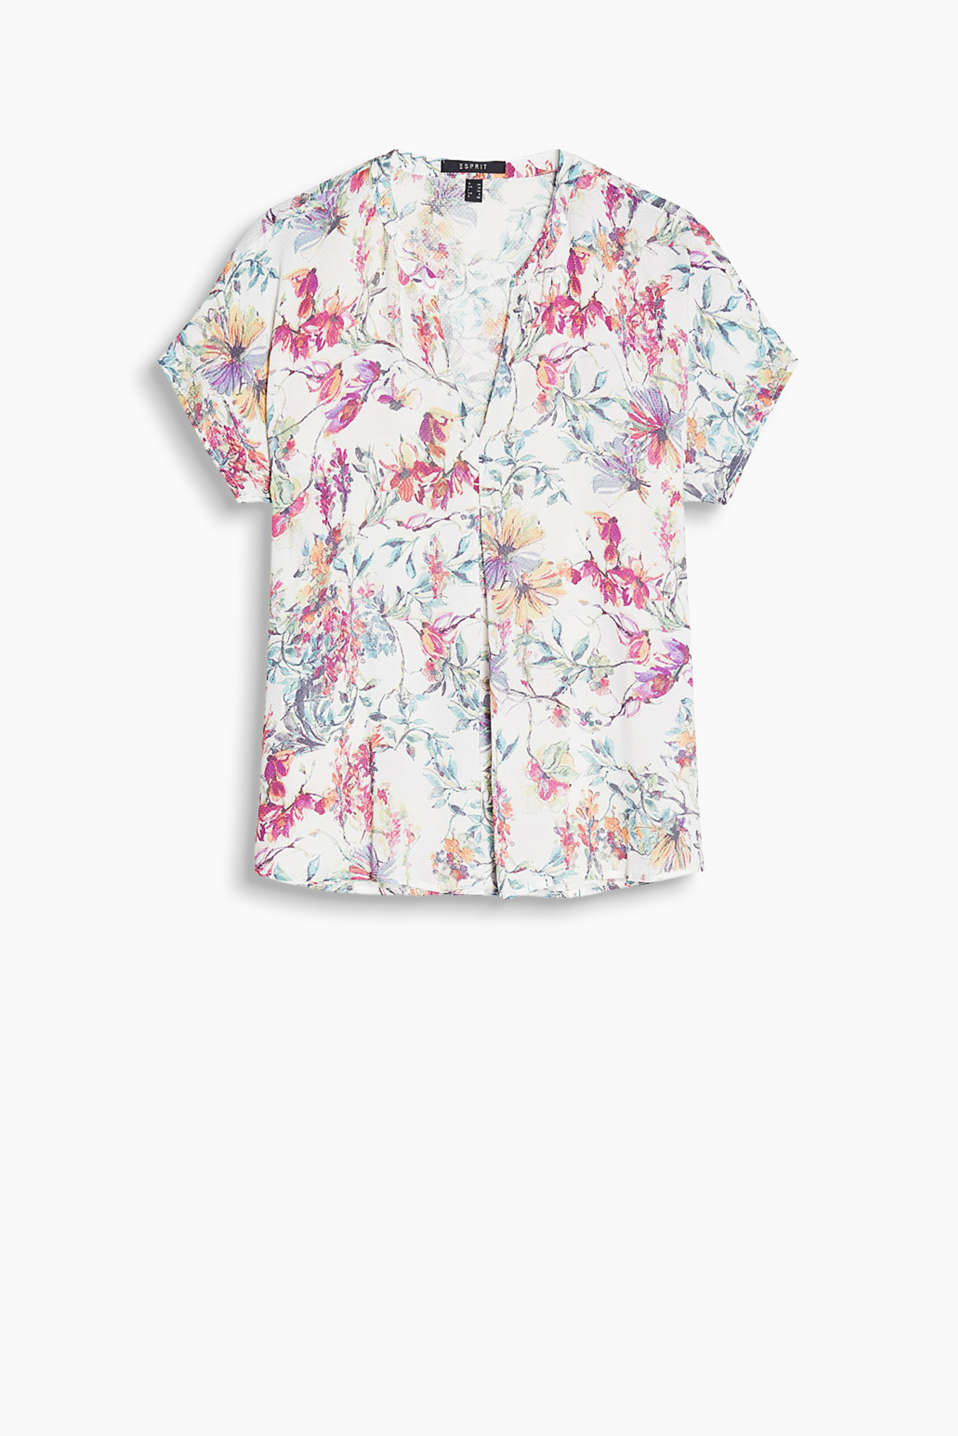 With a front pleat: blouse in flowing, textured fabric with a floral print